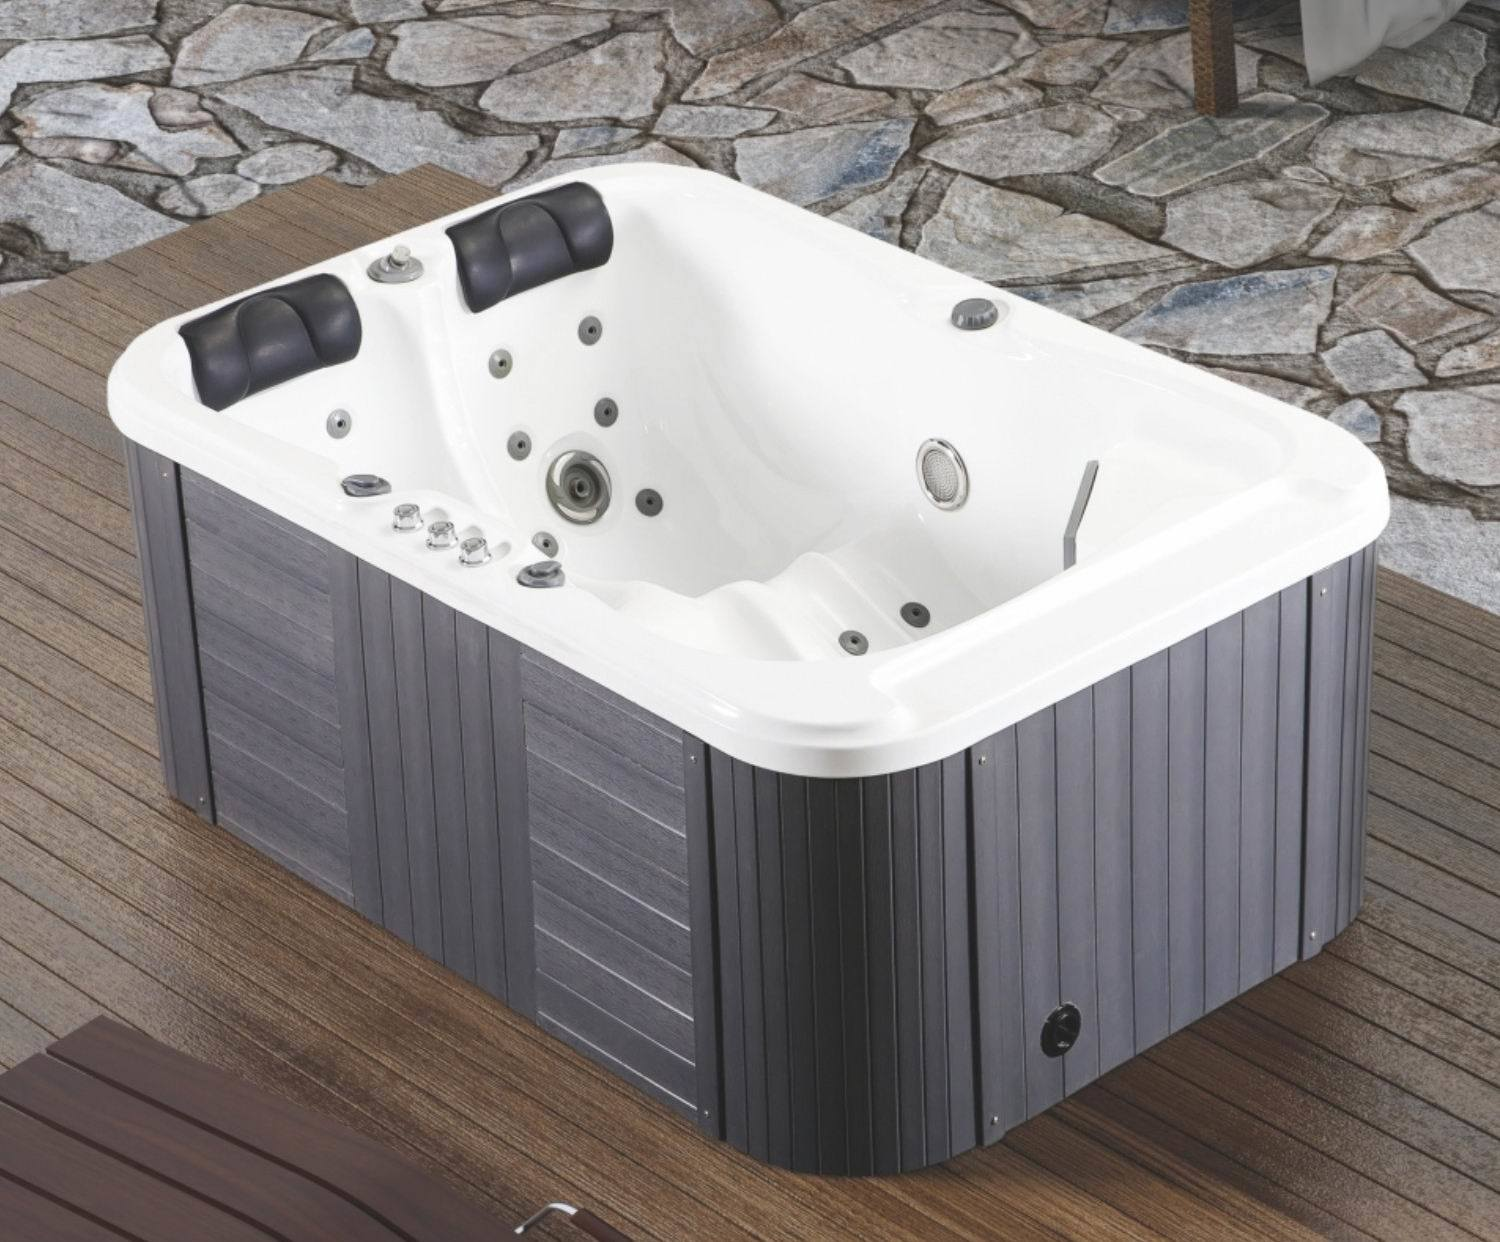 China Garden Freestanding Hot Tub for 2 Person Baths and Swimming ...